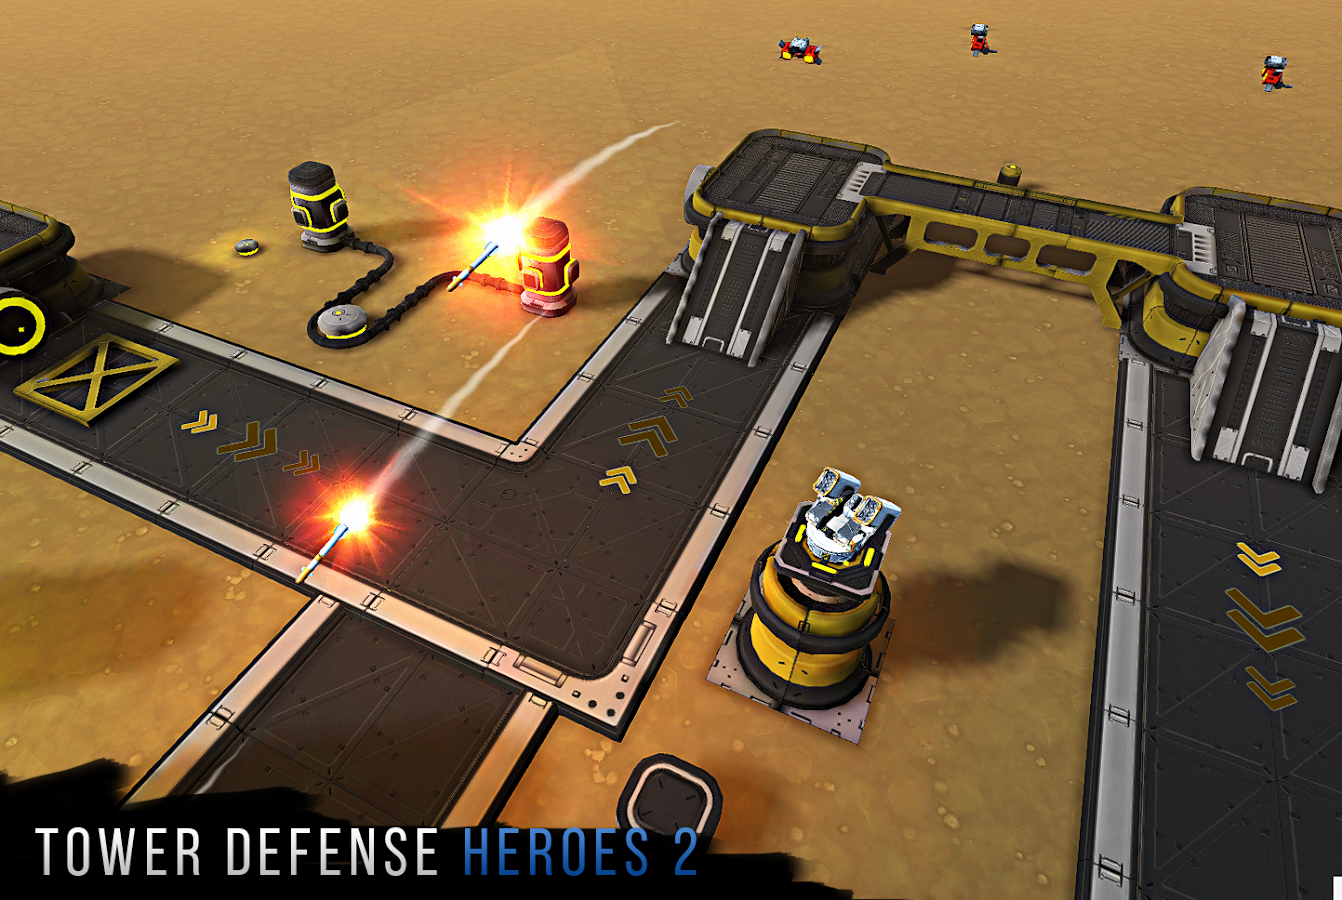 Tower Defense Heroes 2 Screenshot 4